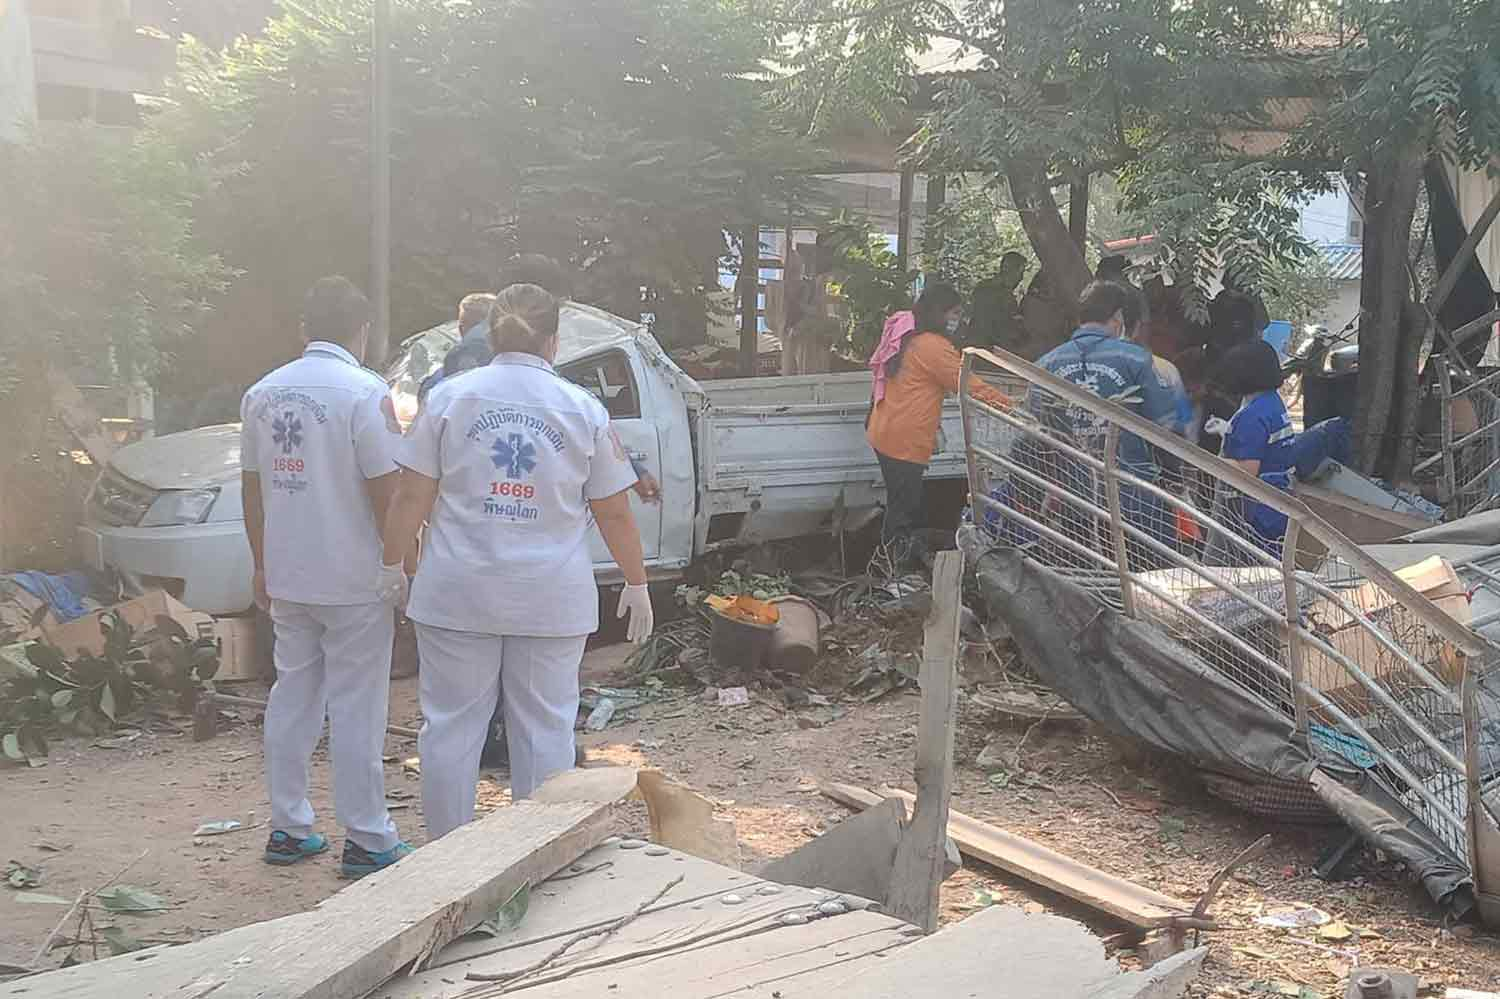 Migrant workers injured in crash